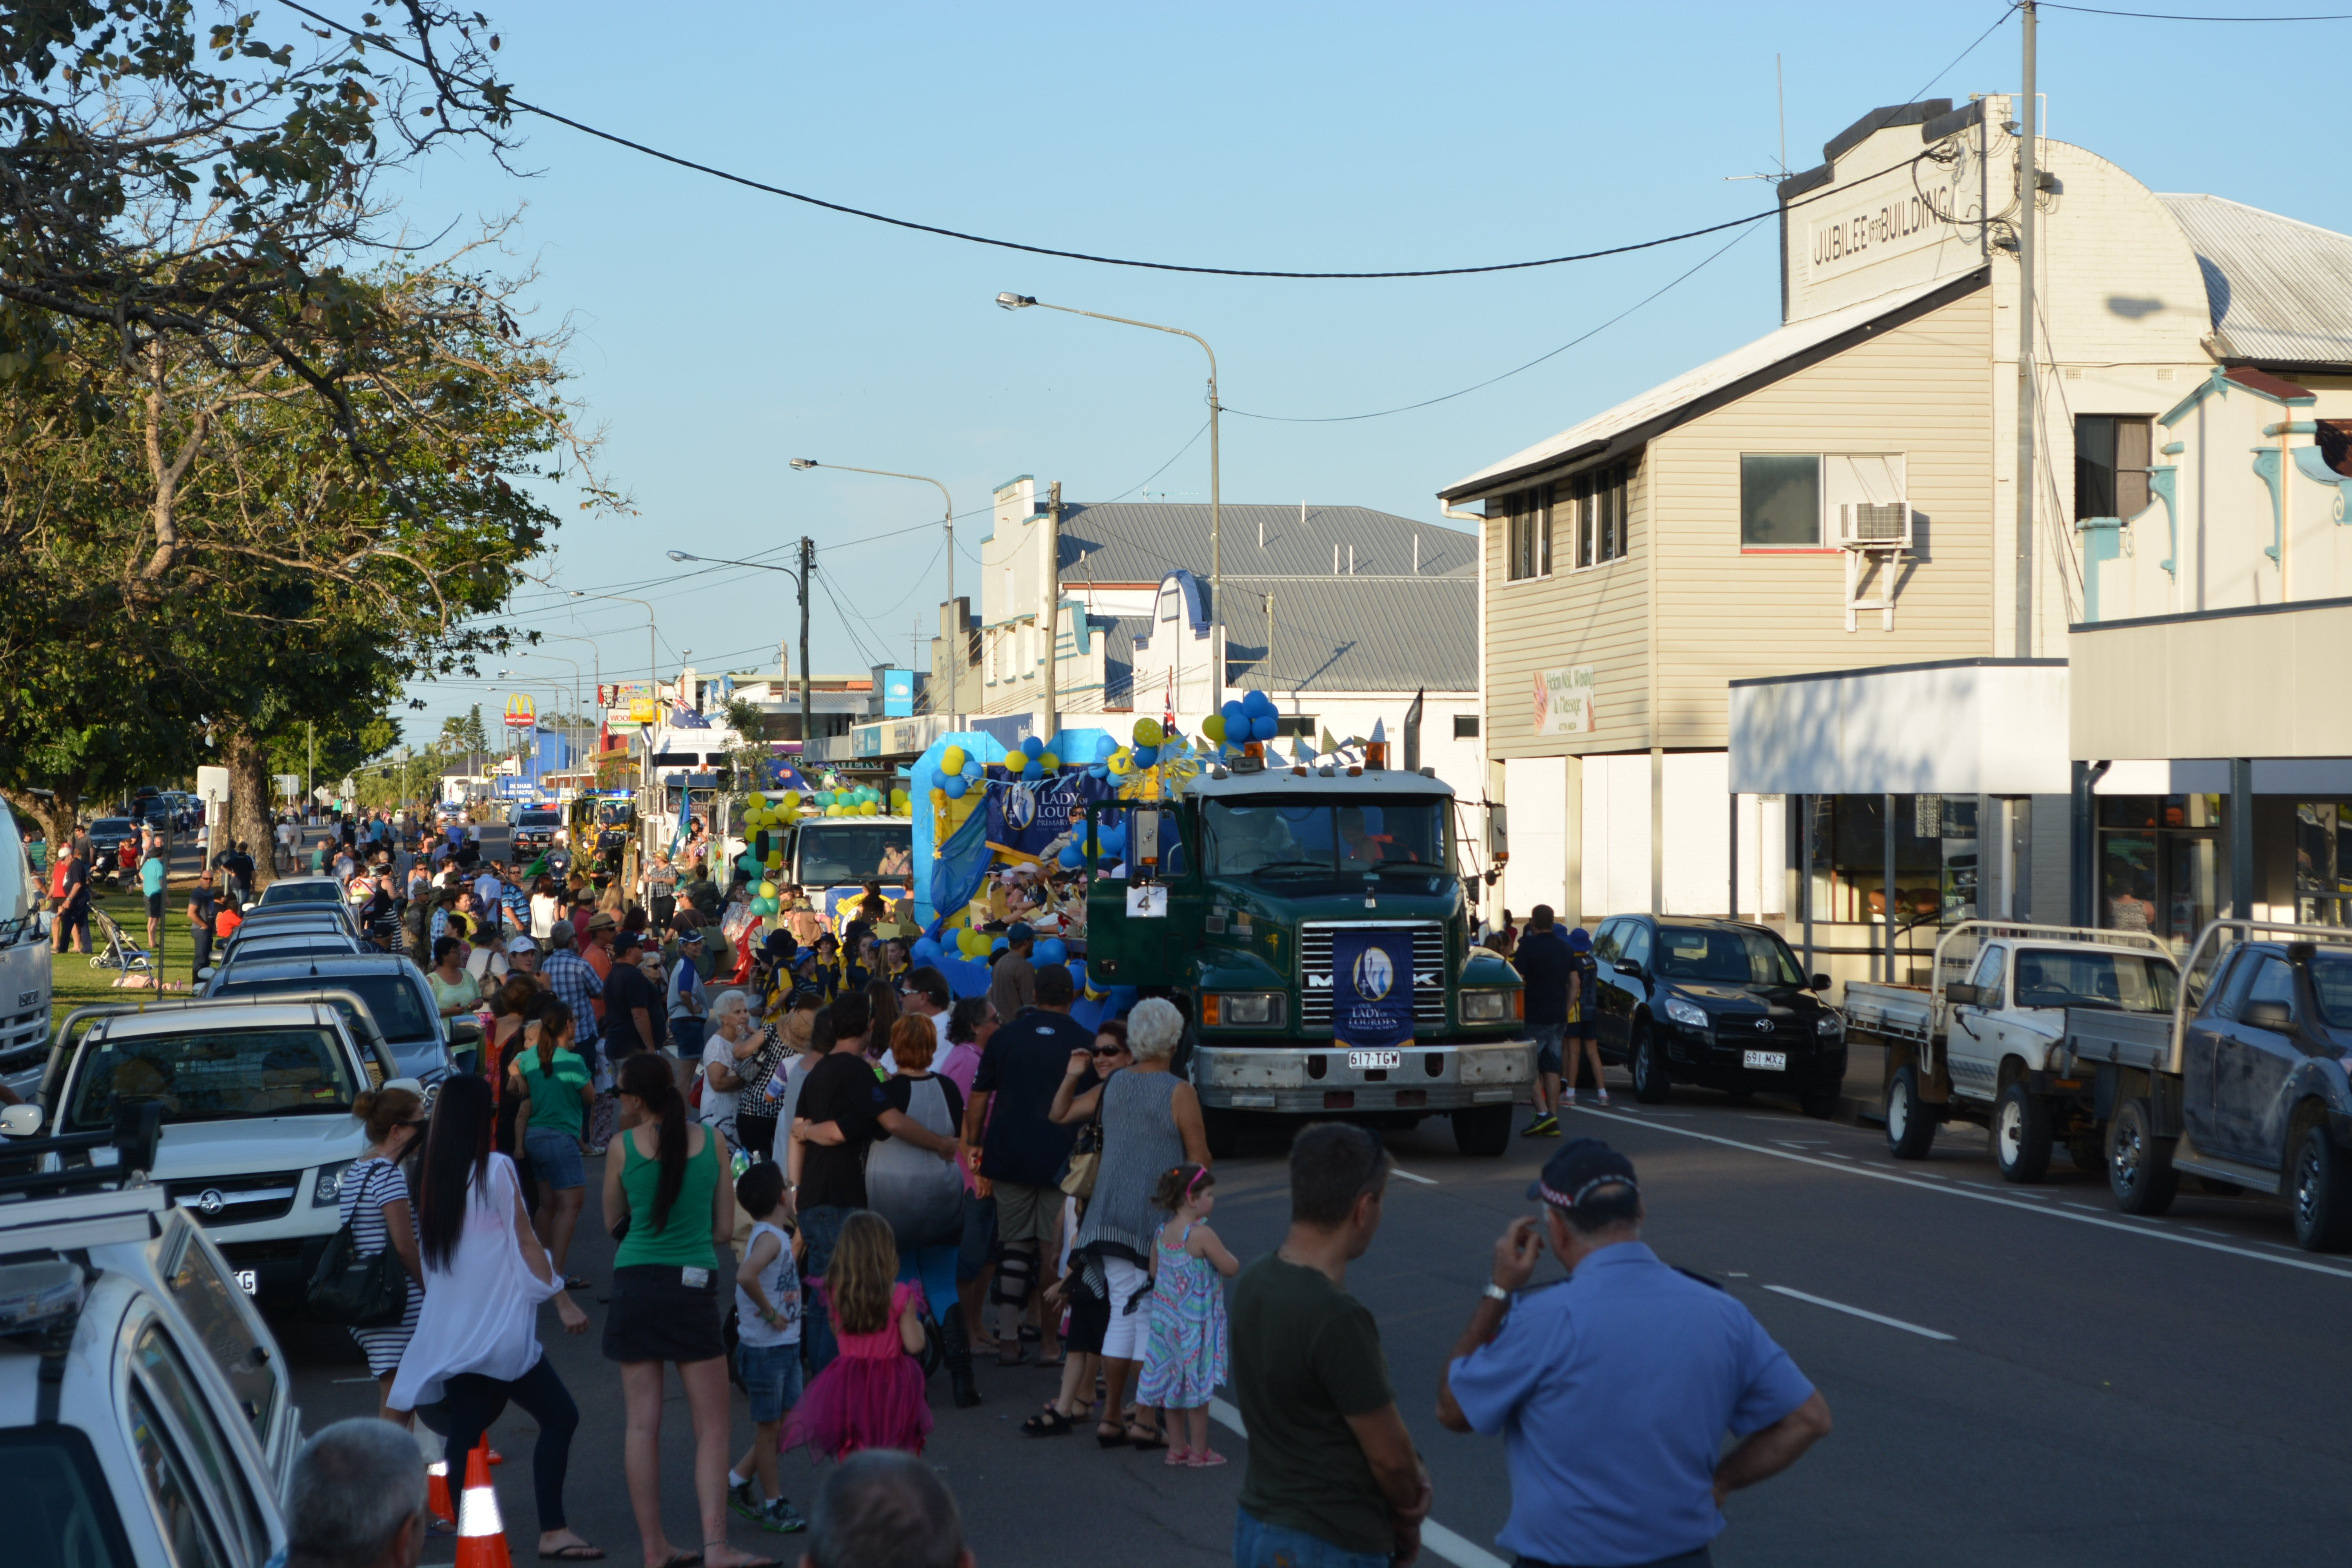 Ingham Maraka Festival - St Kilda Accommodation